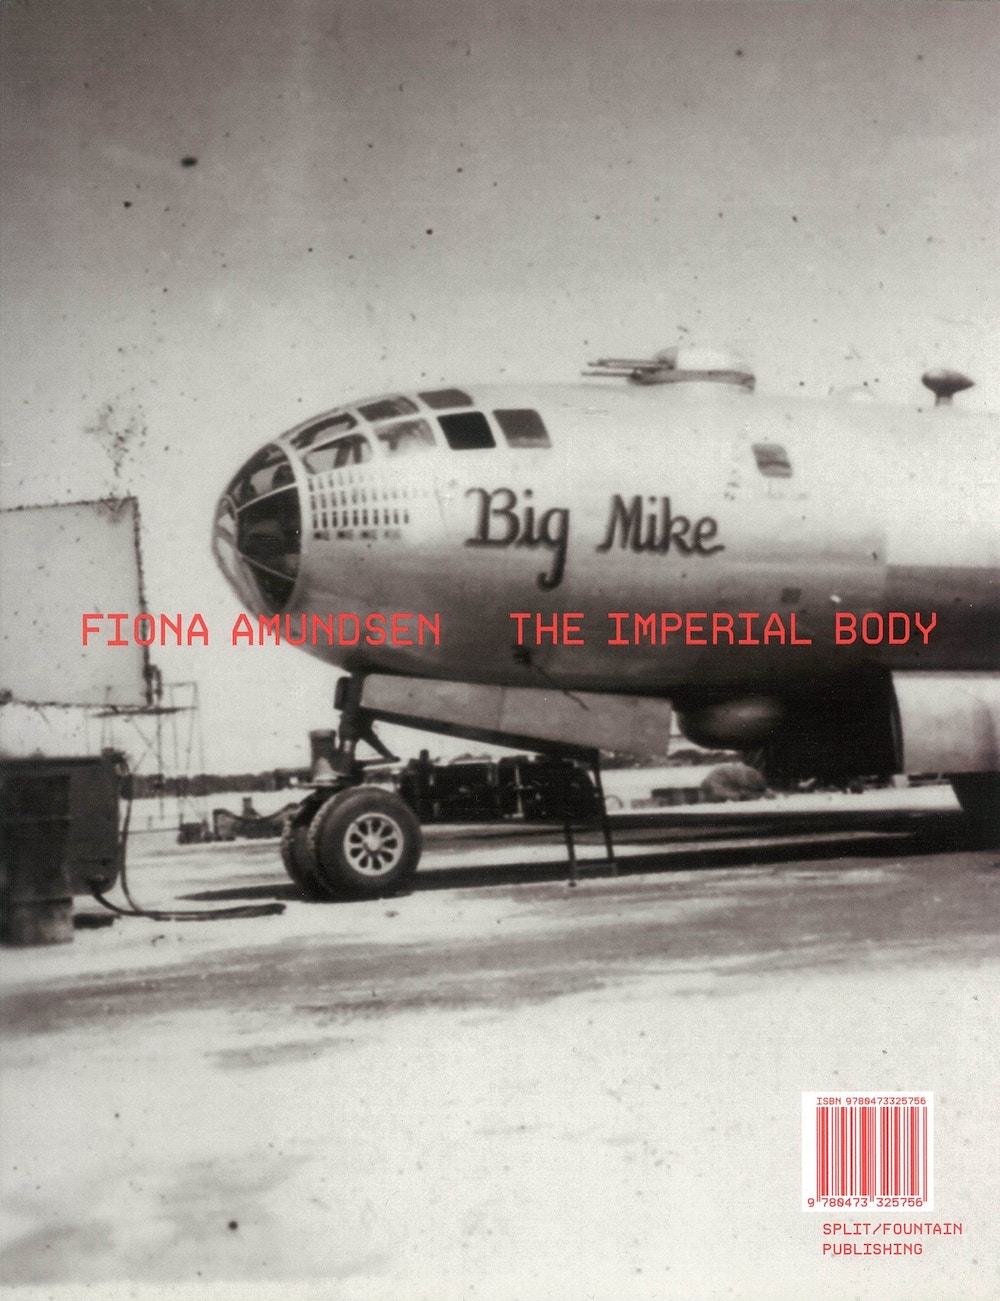 Fiona Amundsen The Imperial Body